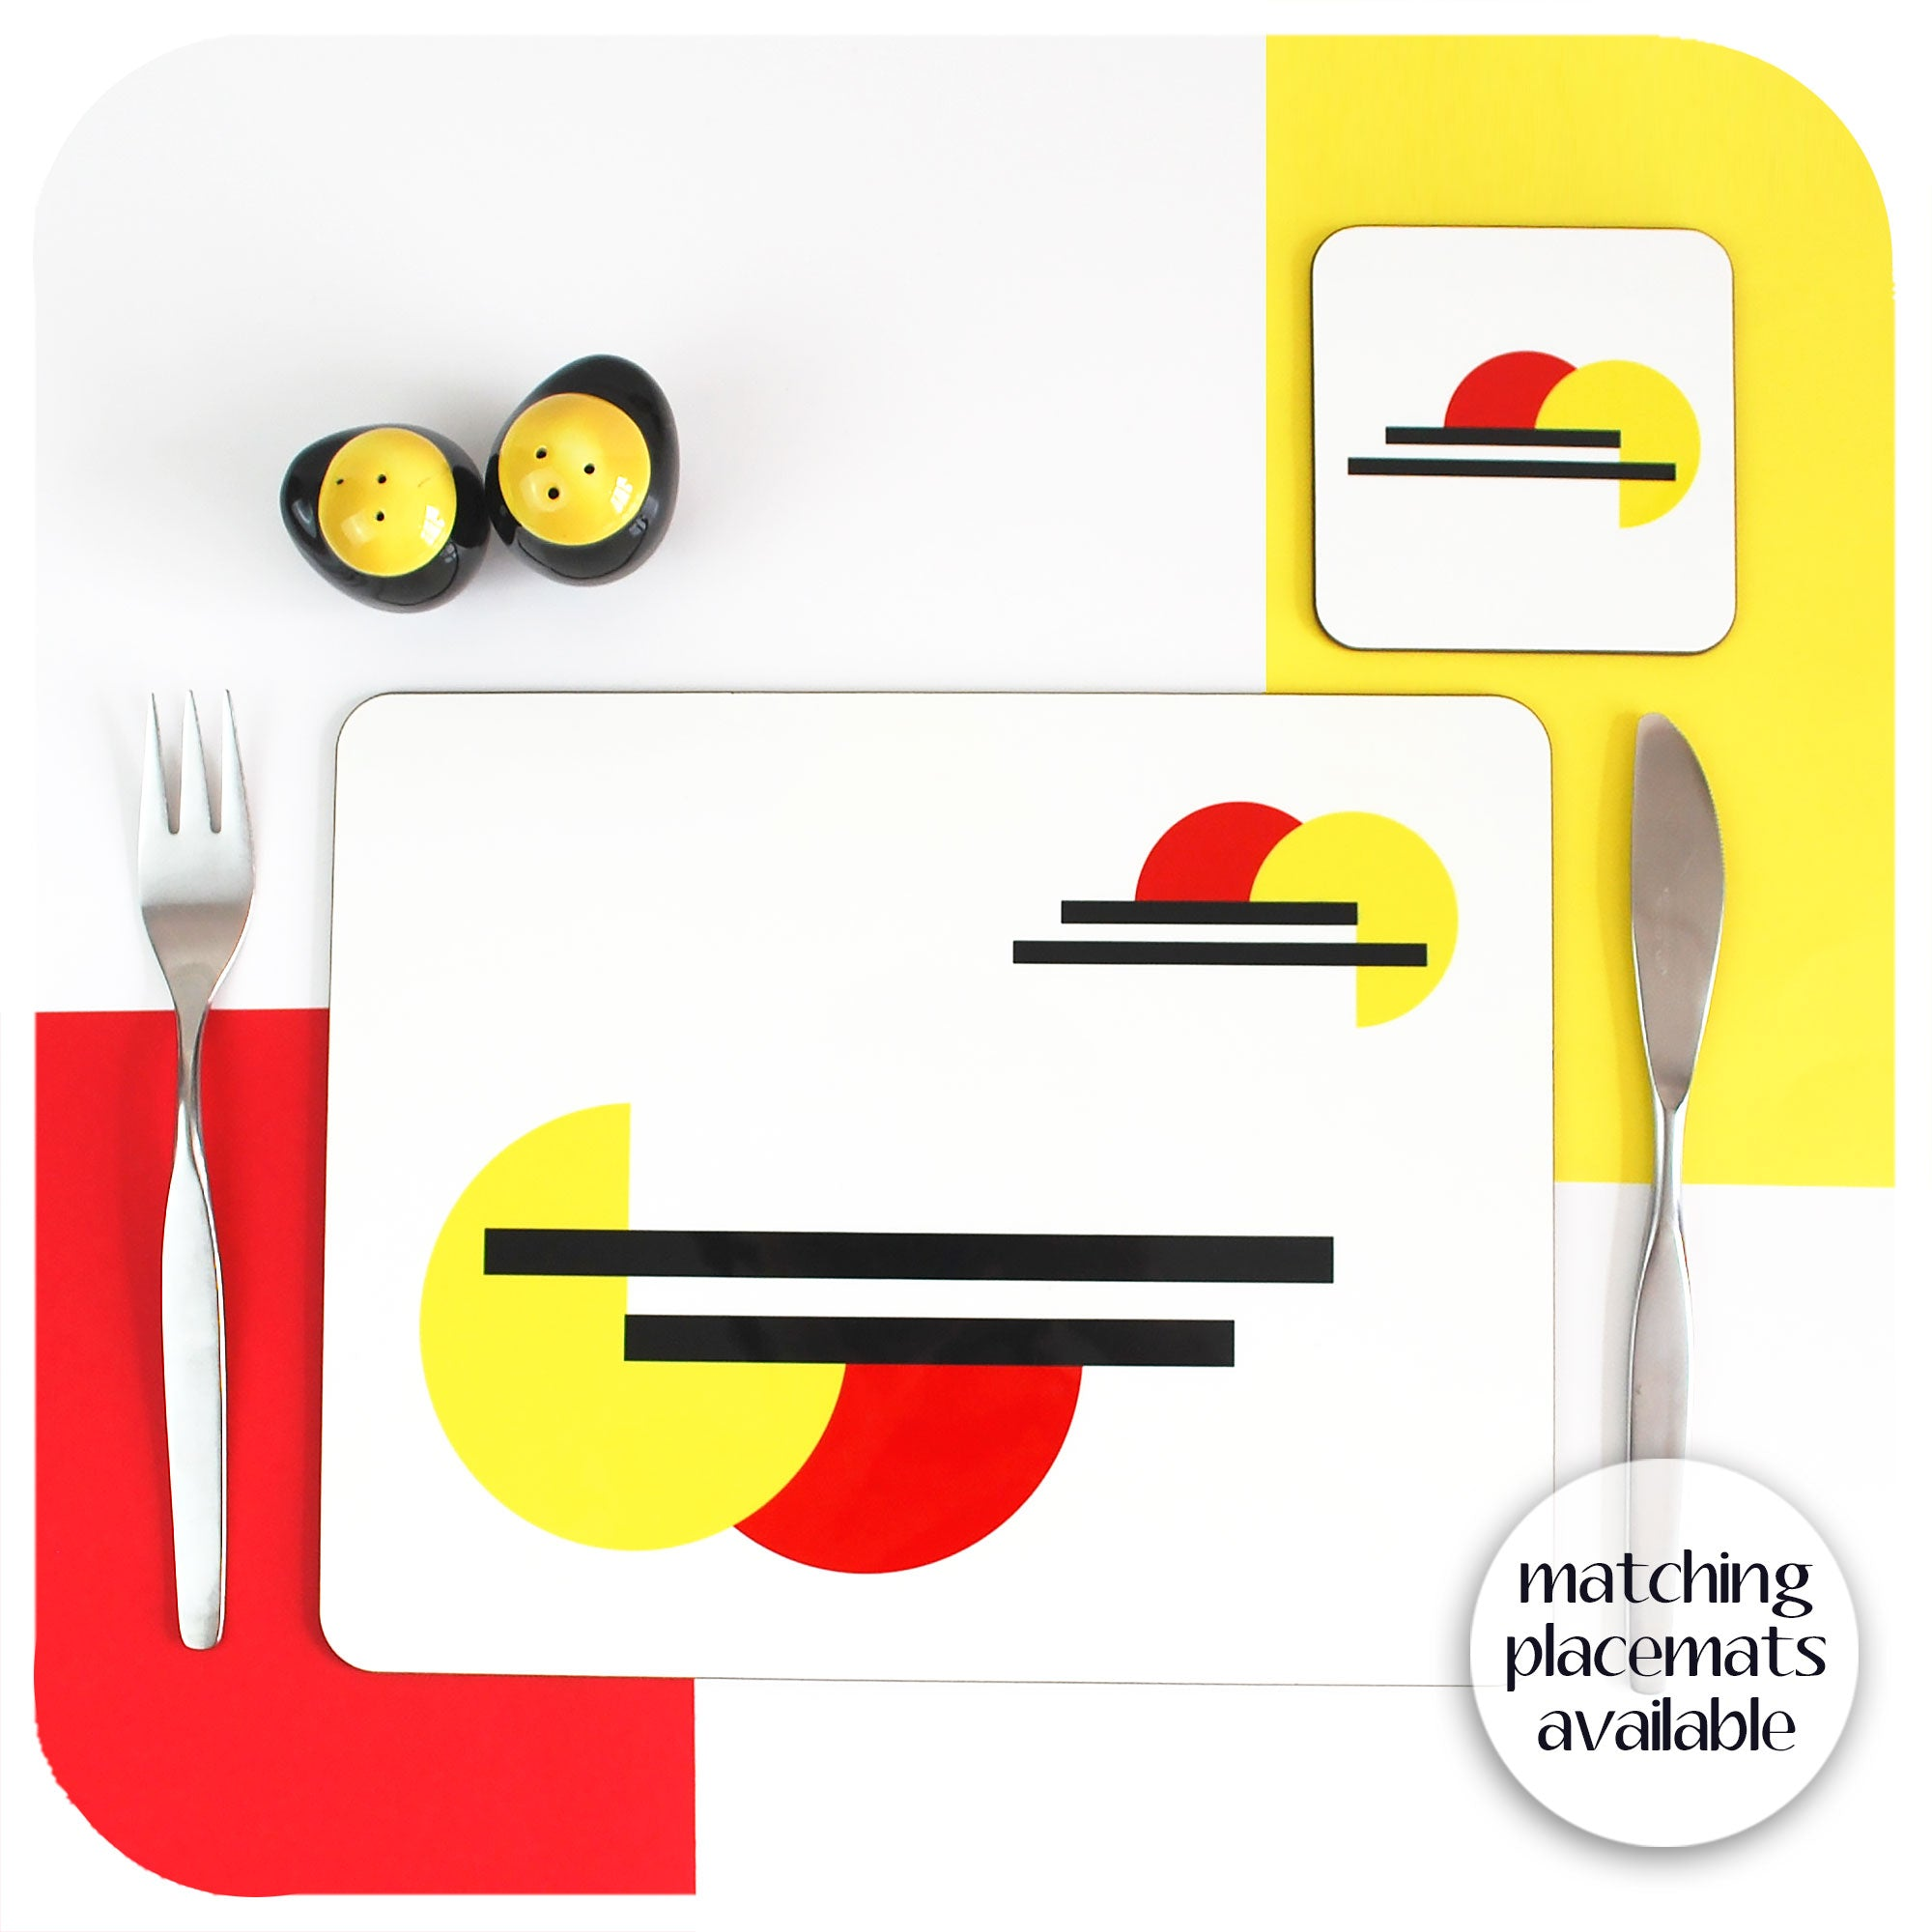 Bauhaus Placemat and matching Coaster, set on a table with vintage cutlery and cruet set | The Inkabilly Emporium | The Inkabilly Emporium